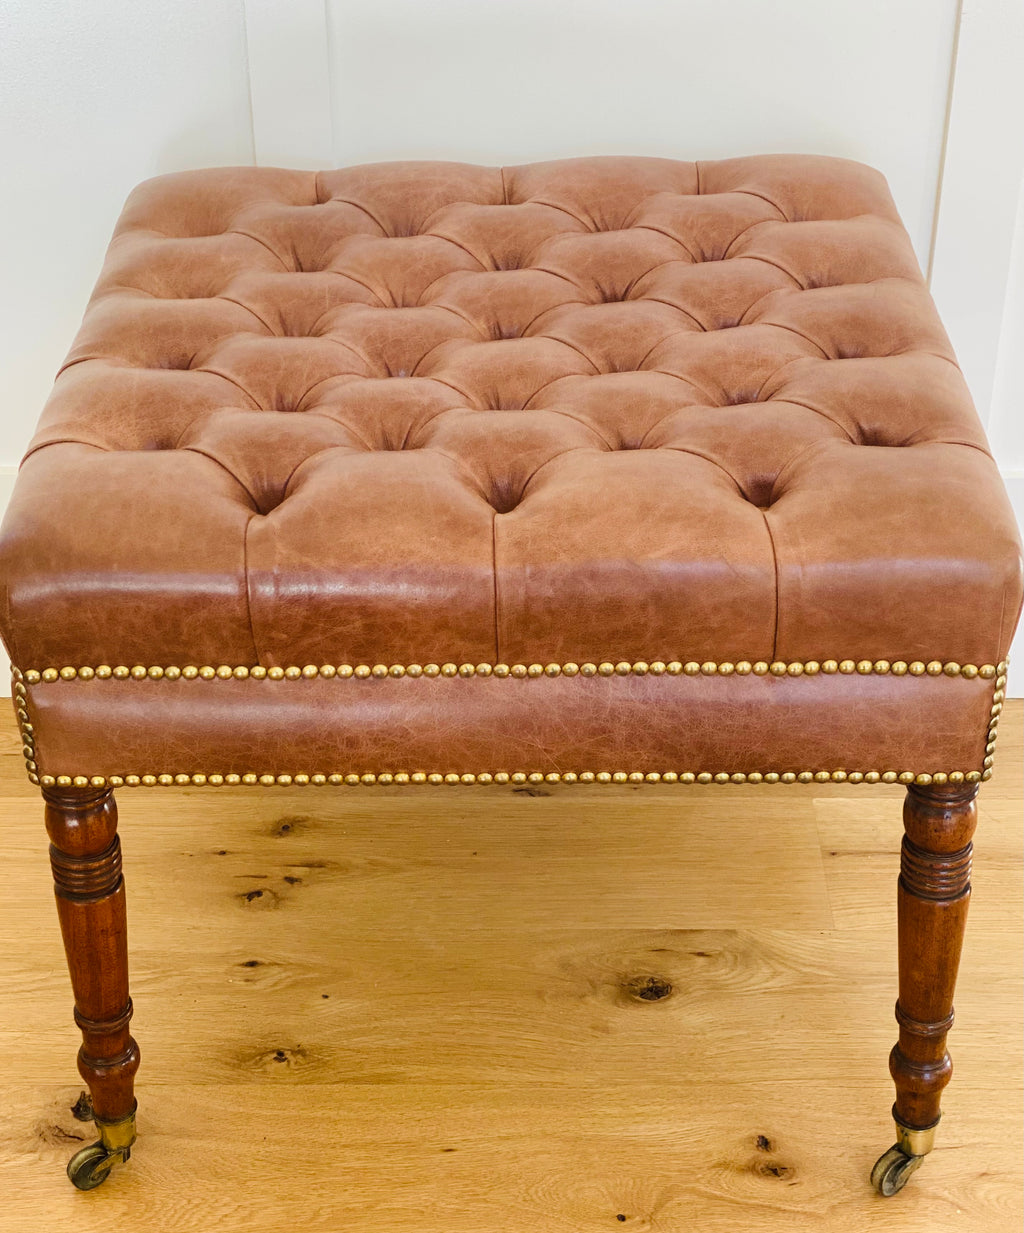 Antique English Bench with Tufted Leather Top